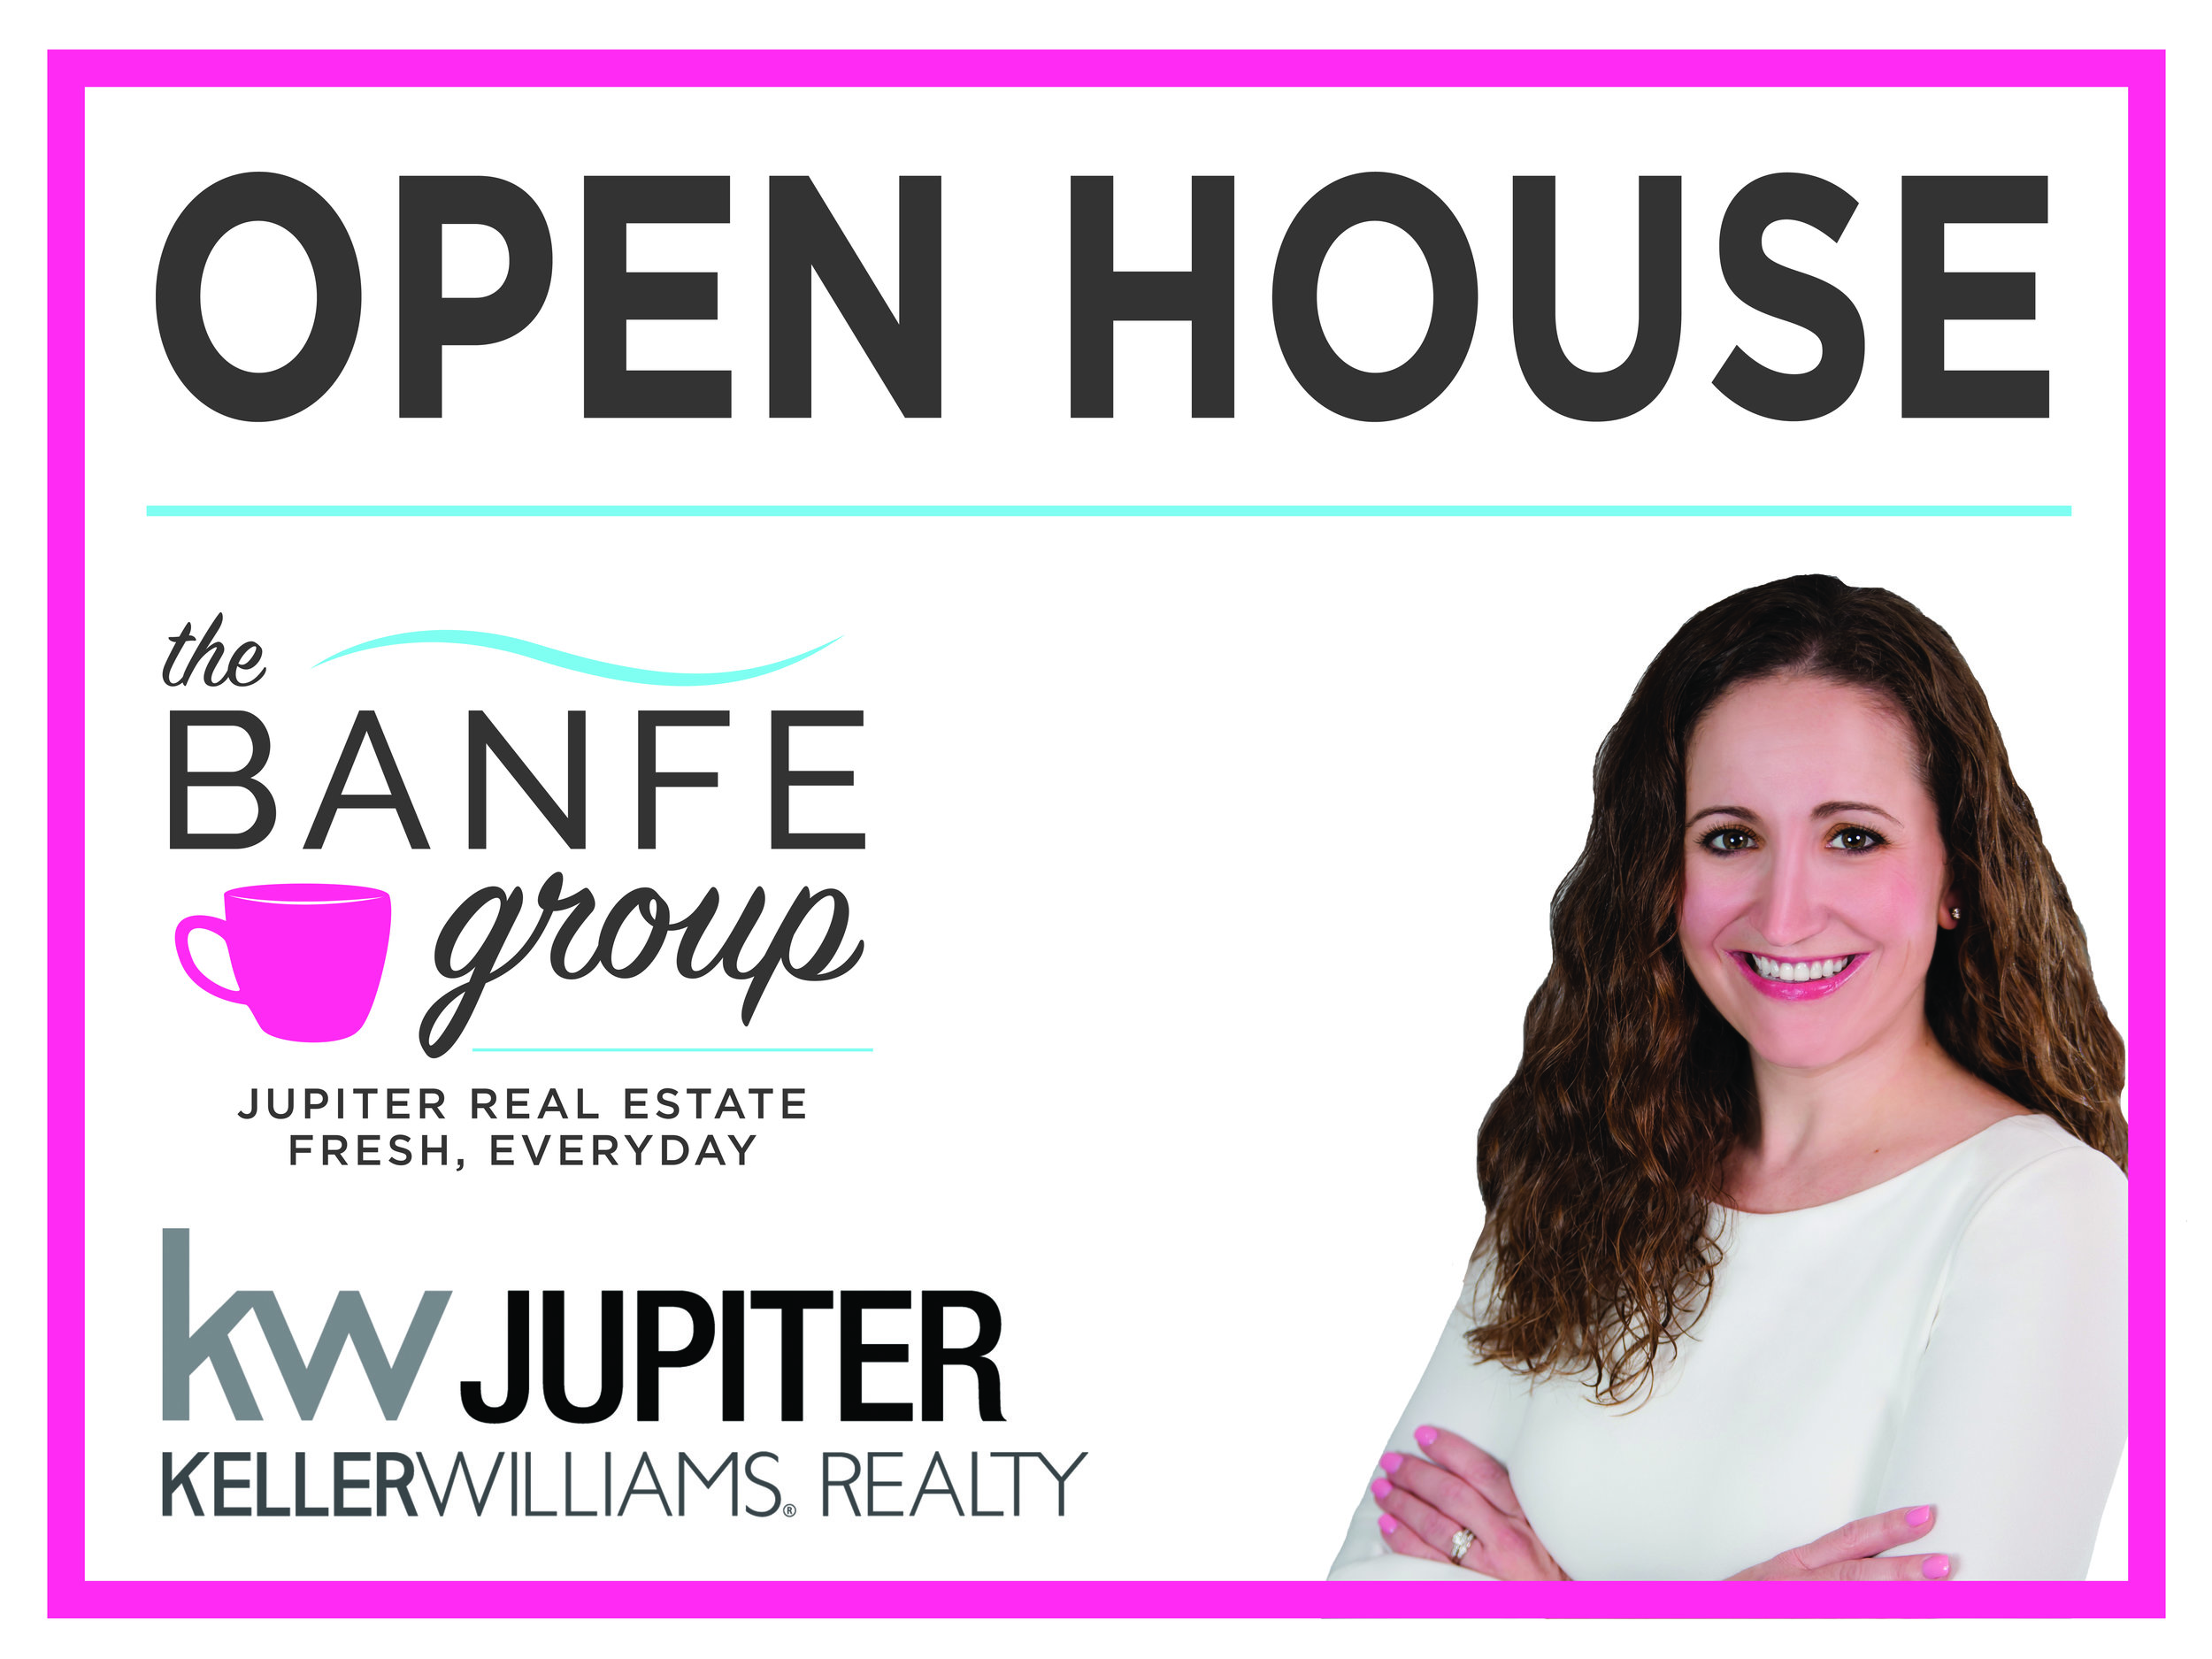 The Banfe Group Open House Sign Design